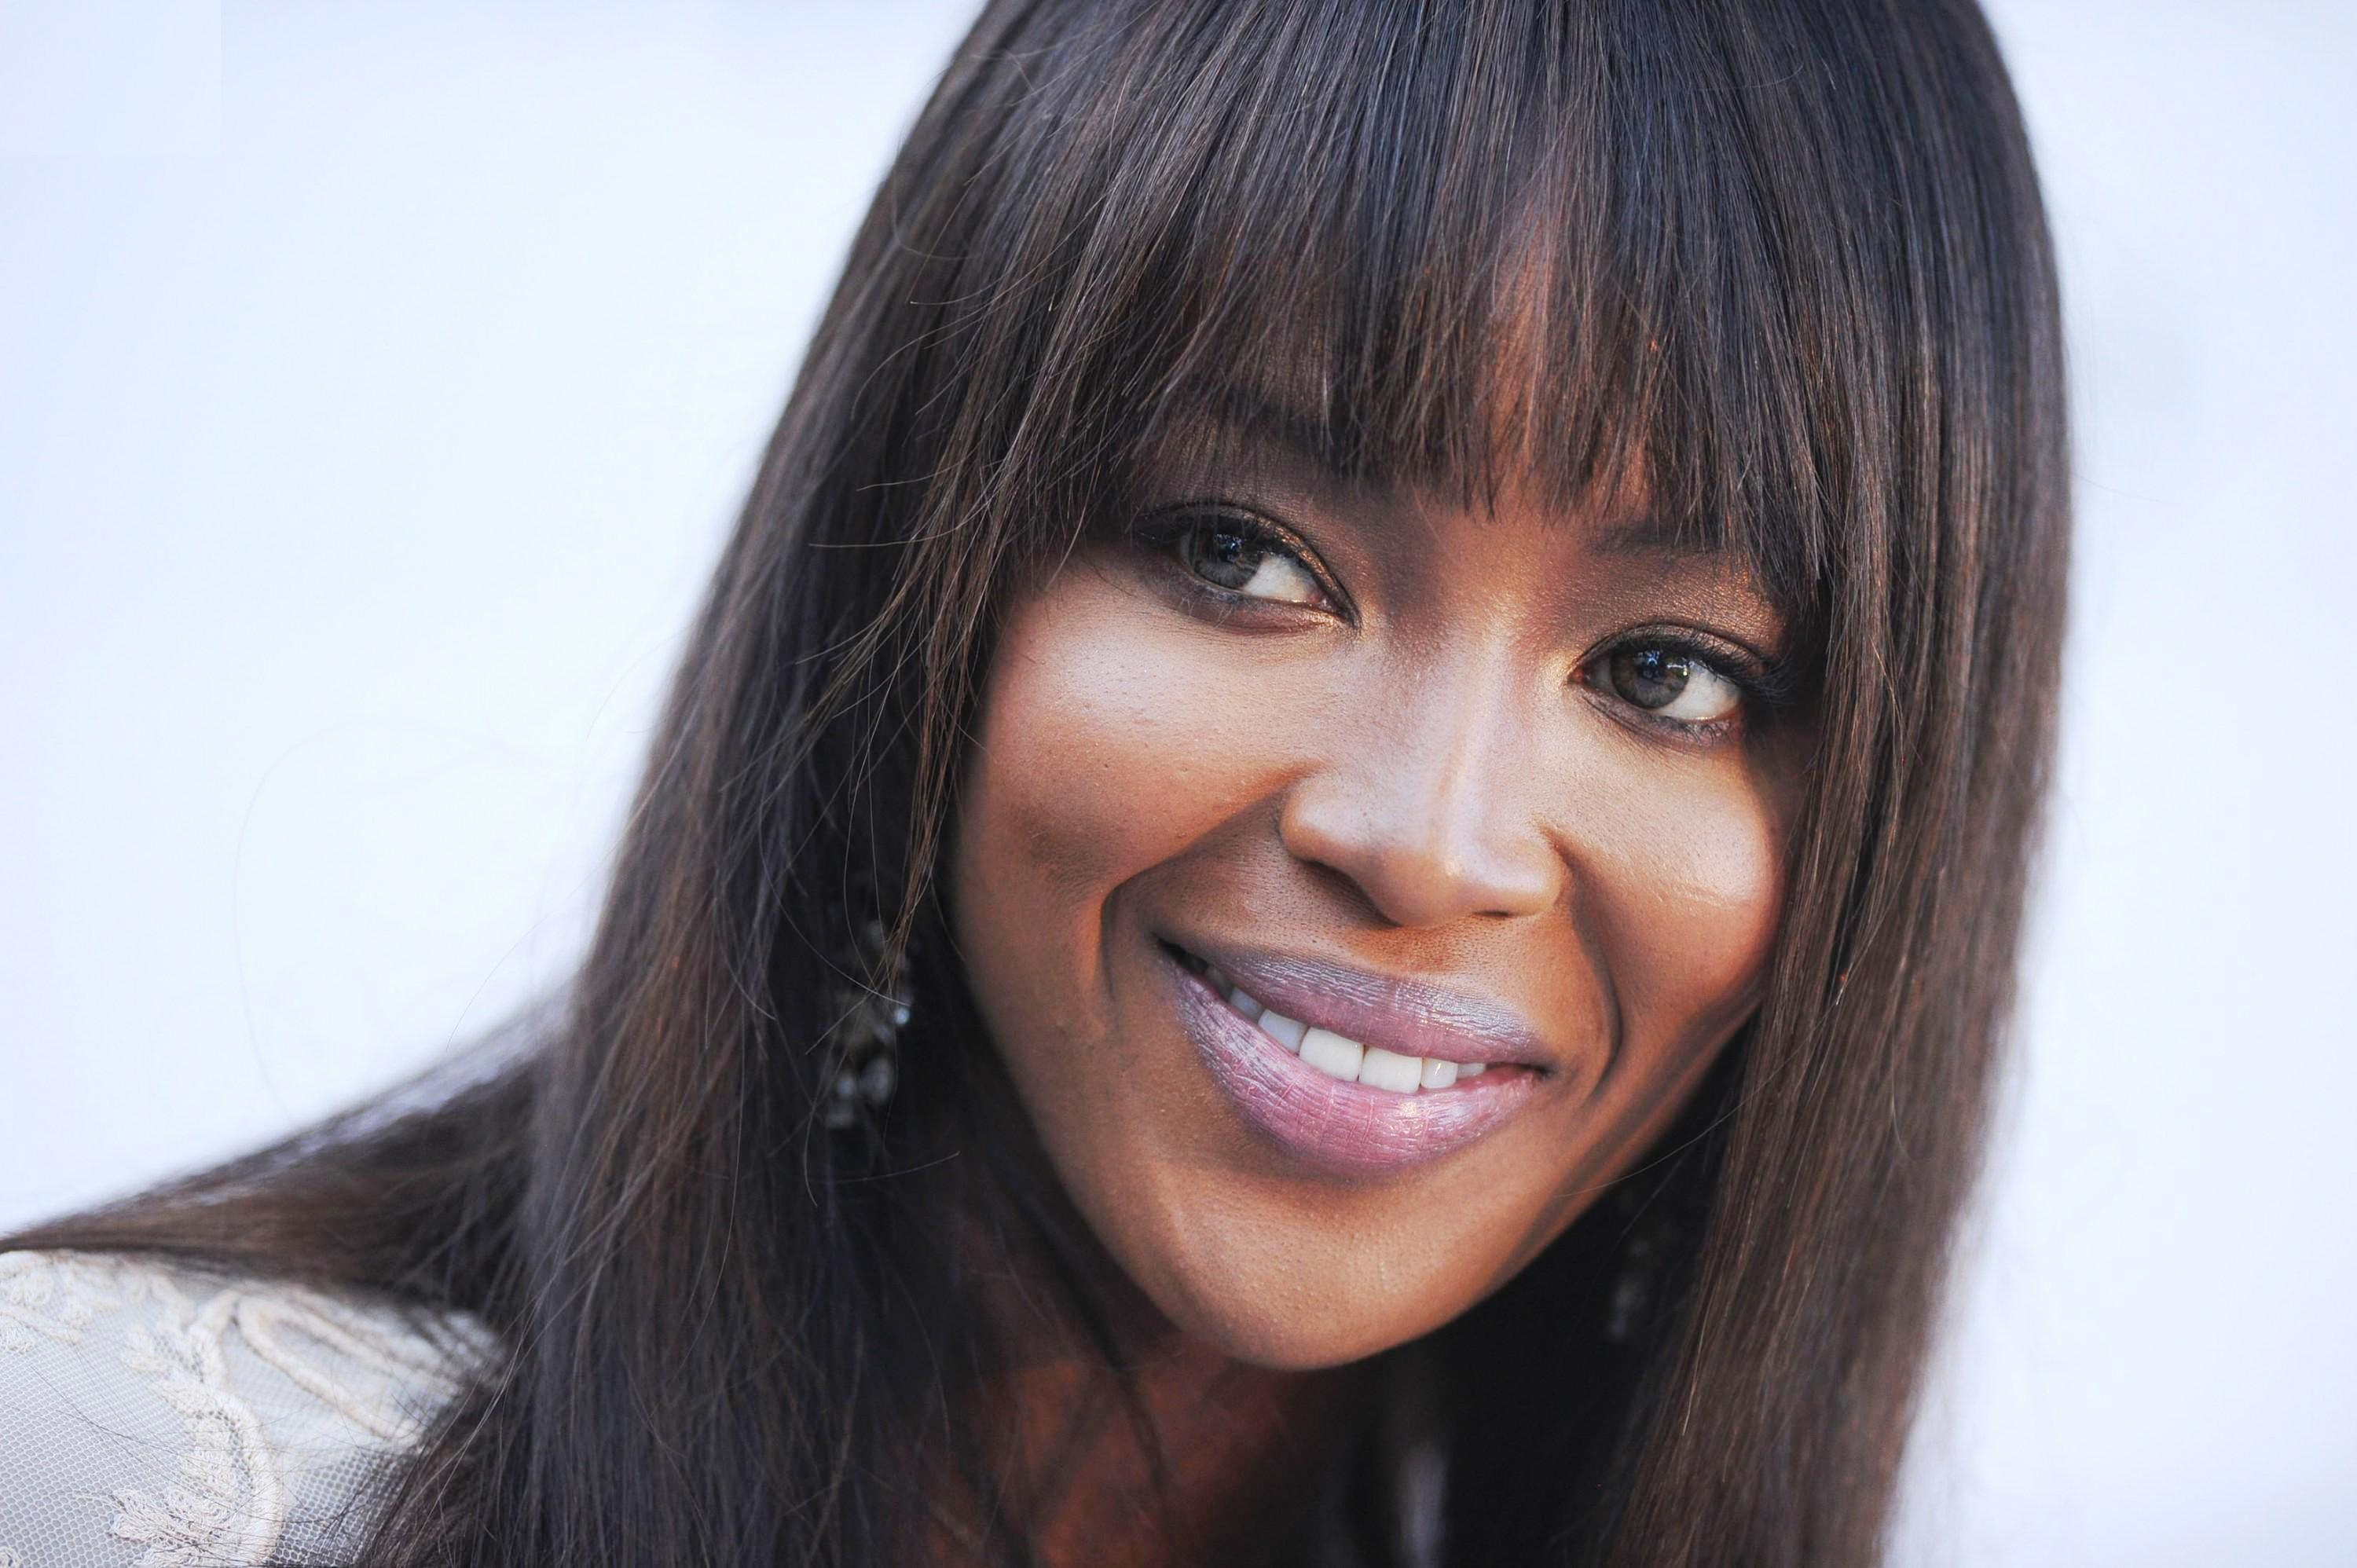 Naomi Campbell Wallpapers and Background Images - stmed.net